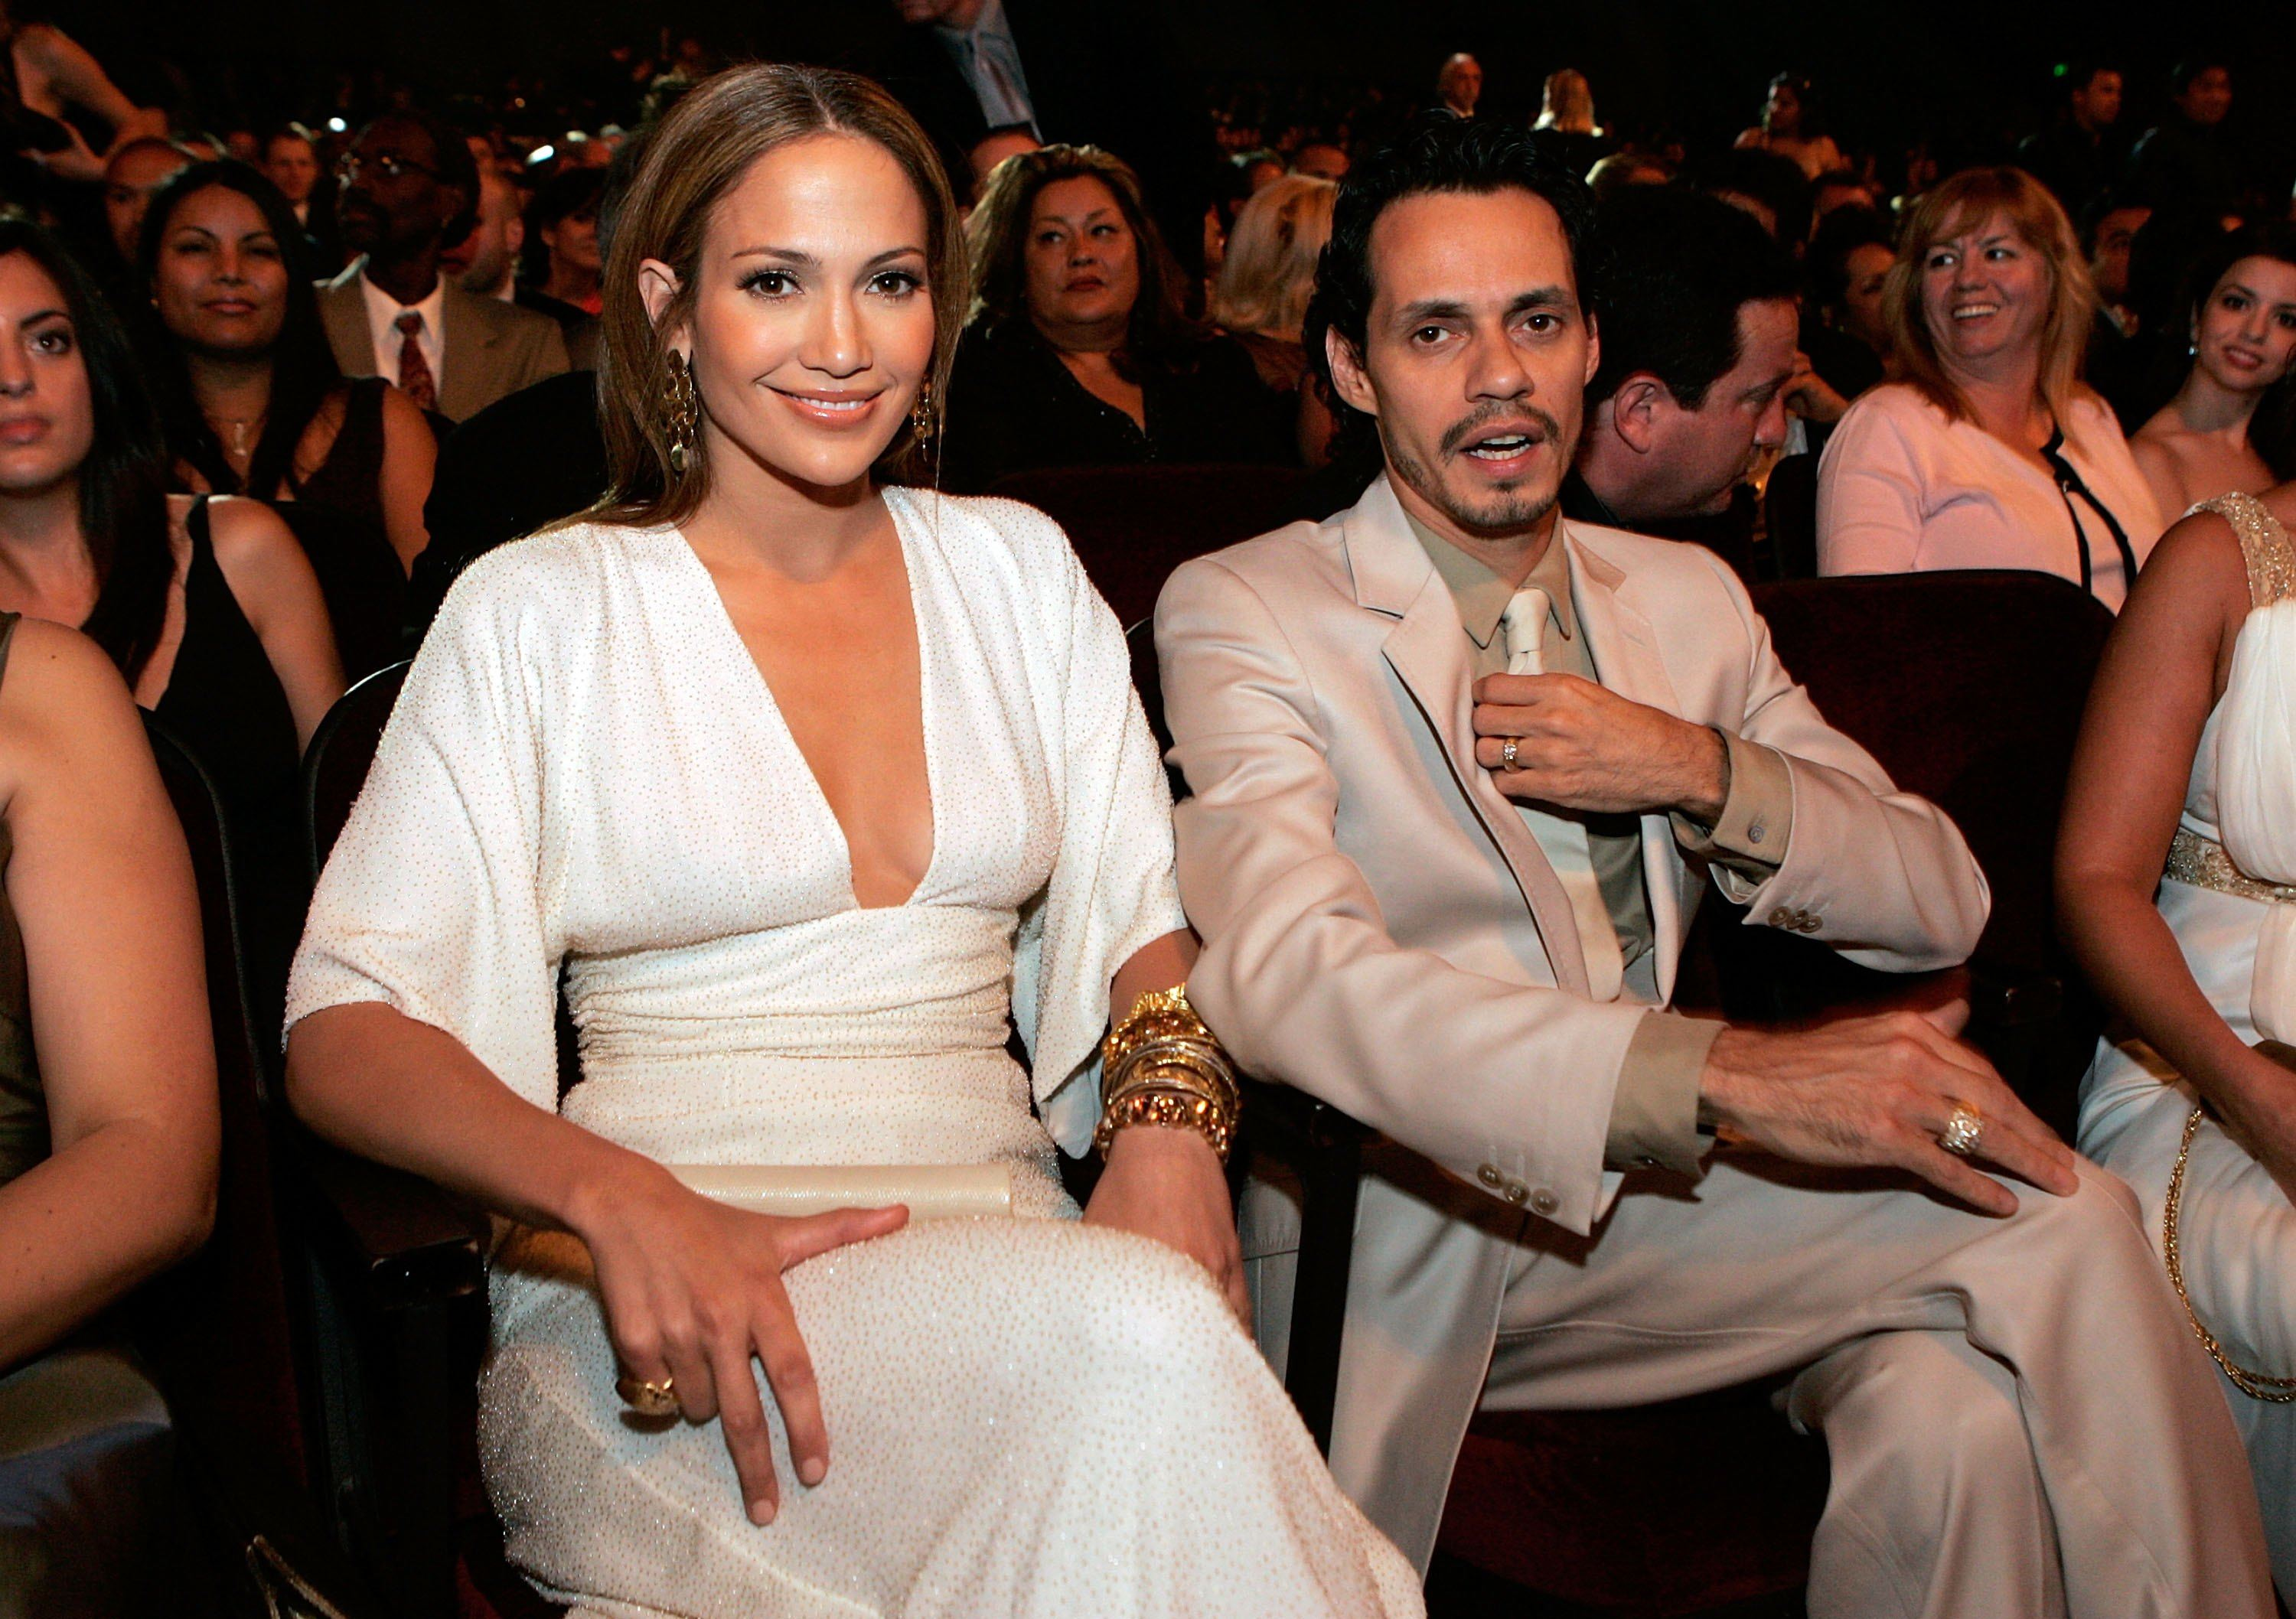 Actress/Singer Jennifer Lopez (L) and Marc Anthony in the audience at the 2006 NCLR ALMA Awards at the Shrine Auditorium on May 7, 2006 in Los Angeles, California.